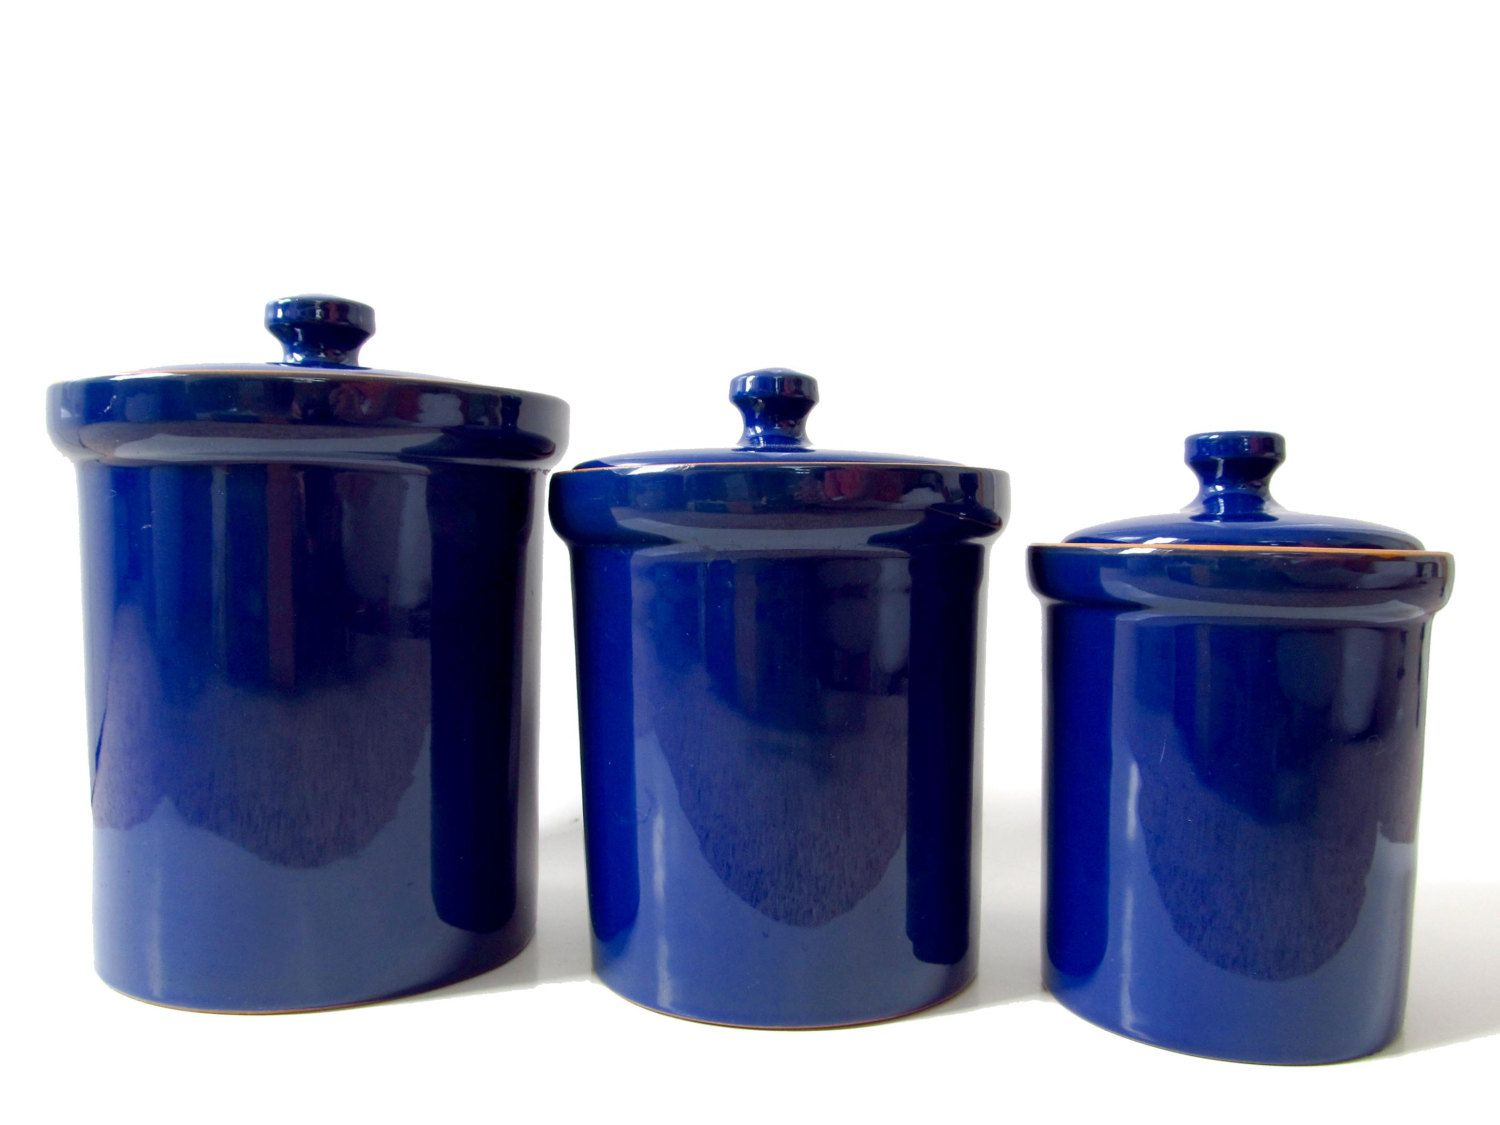 Etonnant Cobalt Blue Ceramic Canister Set Made In Italy Italian Kitchen Accessory  Royal Navy Blue Kitchen Canisters By CollectionSelection On Etsy, SOLD